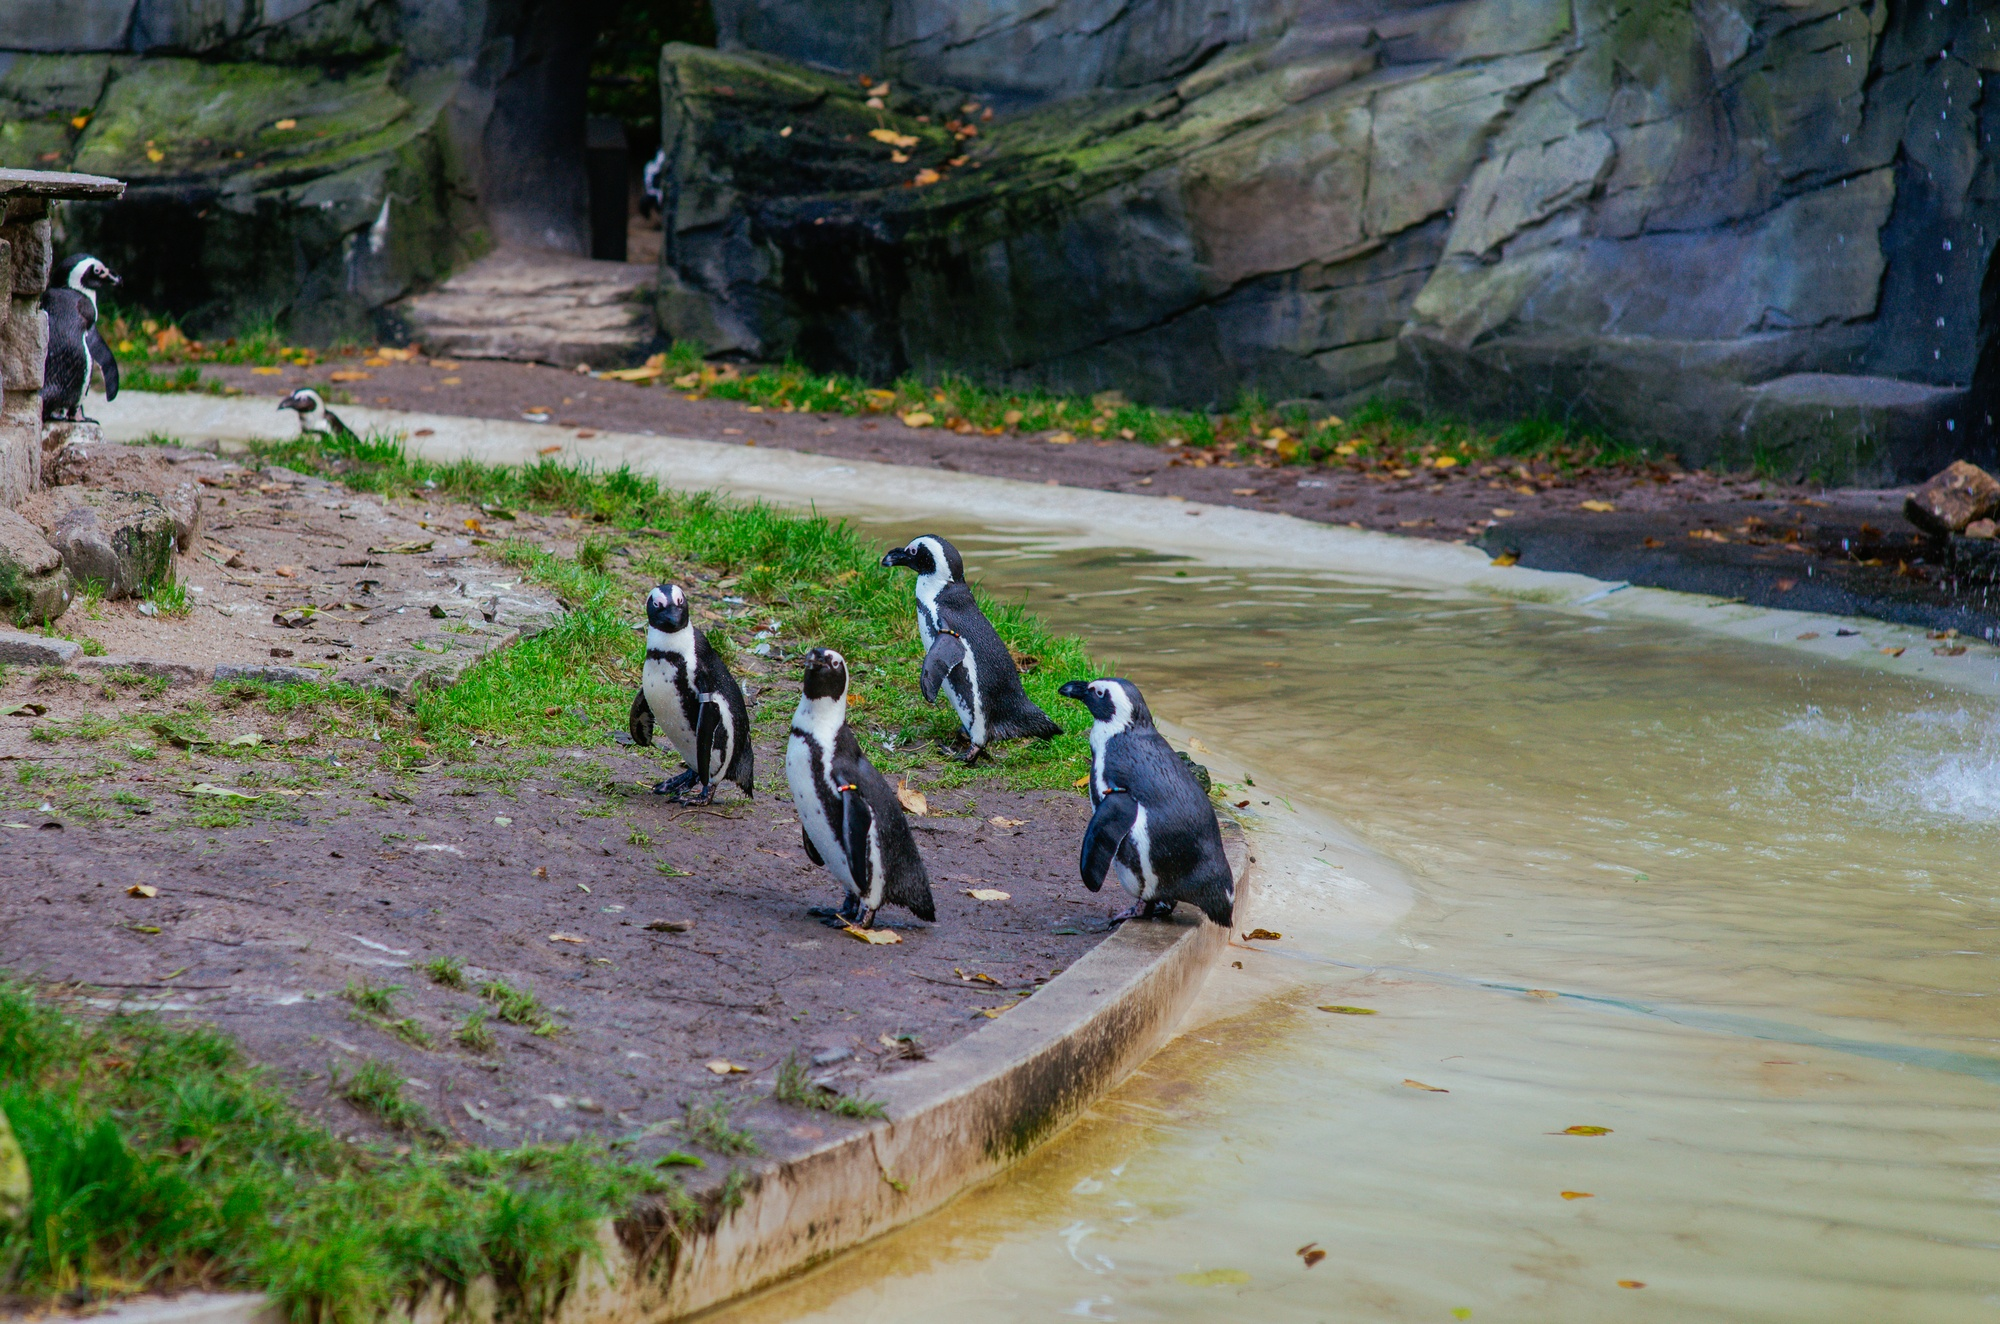 Penguins at the Artis Royal Zoo in Amsterdam